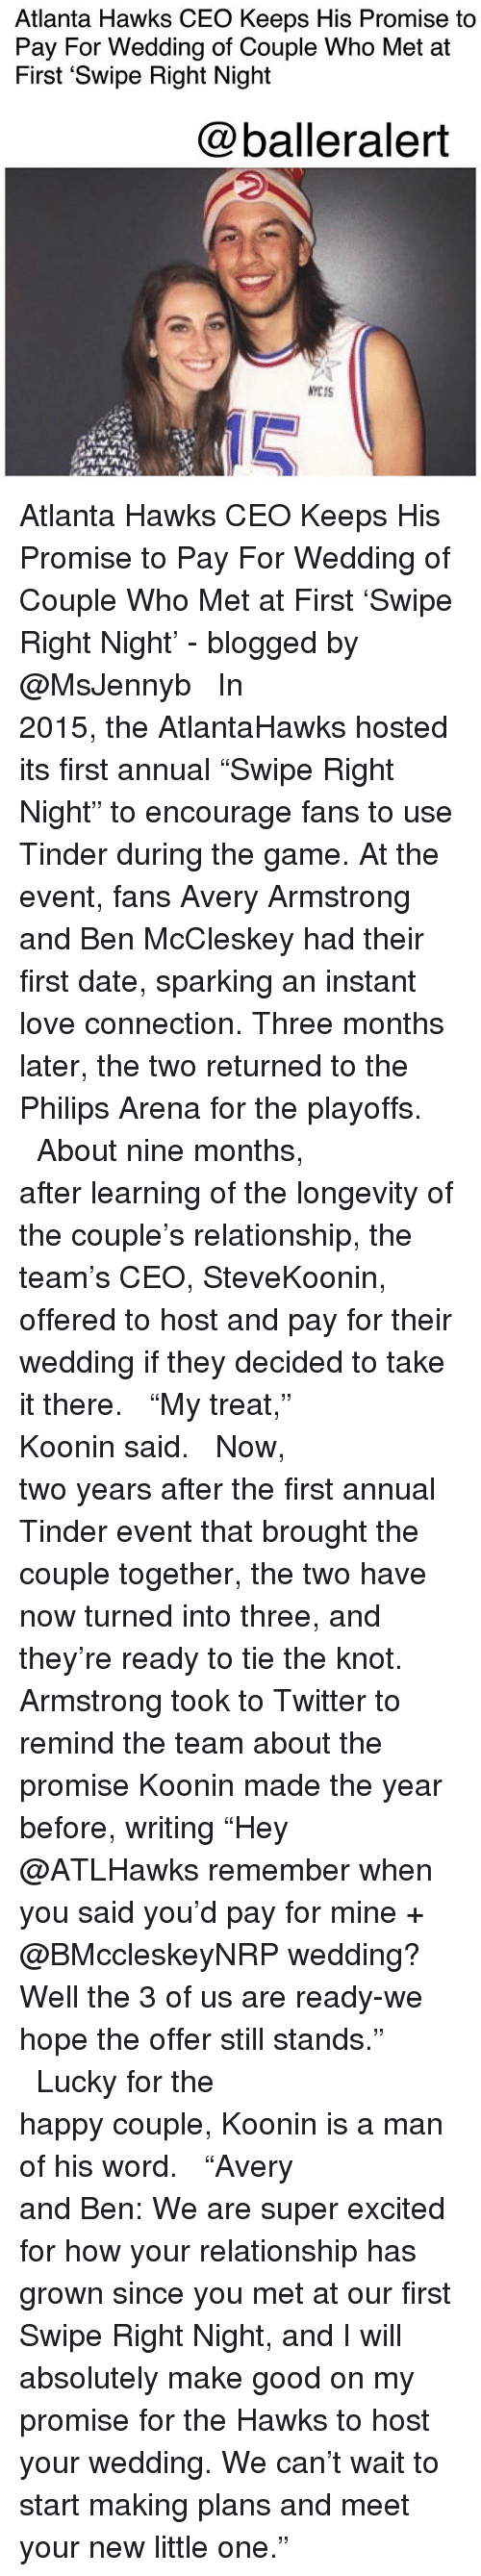 """Knotted: Atlanta Hawks CEO Keeps His Promise to  Pay For Wedding of Couple Who Met at  First 'Swipe Right Night  @balleralert  NYCIS  10 Atlanta Hawks CEO Keeps His Promise to Pay For Wedding of Couple Who Met at First 'Swipe Right Night' - blogged by @MsJennyb ⠀⠀⠀⠀⠀⠀⠀⠀⠀ ⠀⠀⠀⠀⠀⠀⠀⠀⠀ In 2015, the AtlantaHawks hosted its first annual """"Swipe Right Night"""" to encourage fans to use Tinder during the game. At the event, fans Avery Armstrong and Ben McCleskey had their first date, sparking an instant love connection. Three months later, the two returned to the Philips Arena for the playoffs. ⠀⠀⠀⠀⠀⠀⠀⠀⠀ ⠀⠀⠀⠀⠀⠀⠀⠀⠀ About nine months, after learning of the longevity of the couple's relationship, the team's CEO, SteveKoonin, offered to host and pay for their wedding if they decided to take it there. ⠀⠀⠀⠀⠀⠀⠀⠀⠀ ⠀⠀⠀⠀⠀⠀⠀⠀⠀ """"My treat,"""" Koonin said. ⠀⠀⠀⠀⠀⠀⠀⠀⠀ ⠀⠀⠀⠀⠀⠀⠀⠀⠀ Now, two years after the first annual Tinder event that brought the couple together, the two have now turned into three, and they're ready to tie the knot. Armstrong took to Twitter to remind the team about the promise Koonin made the year before, writing """"Hey @ATLHawks remember when you said you'd pay for mine + @BMccleskeyNRP wedding? Well the 3 of us are ready-we hope the offer still stands."""" ⠀⠀⠀⠀⠀⠀⠀⠀⠀ ⠀⠀⠀⠀⠀⠀⠀⠀⠀ Lucky for the happy couple, Koonin is a man of his word. ⠀⠀⠀⠀⠀⠀⠀⠀⠀ ⠀⠀⠀⠀⠀⠀⠀⠀⠀ """"Avery and Ben: We are super excited for how your relationship has grown since you met at our first Swipe Right Night, and I will absolutely make good on my promise for the Hawks to host your wedding. We can't wait to start making plans and meet your new little one."""""""